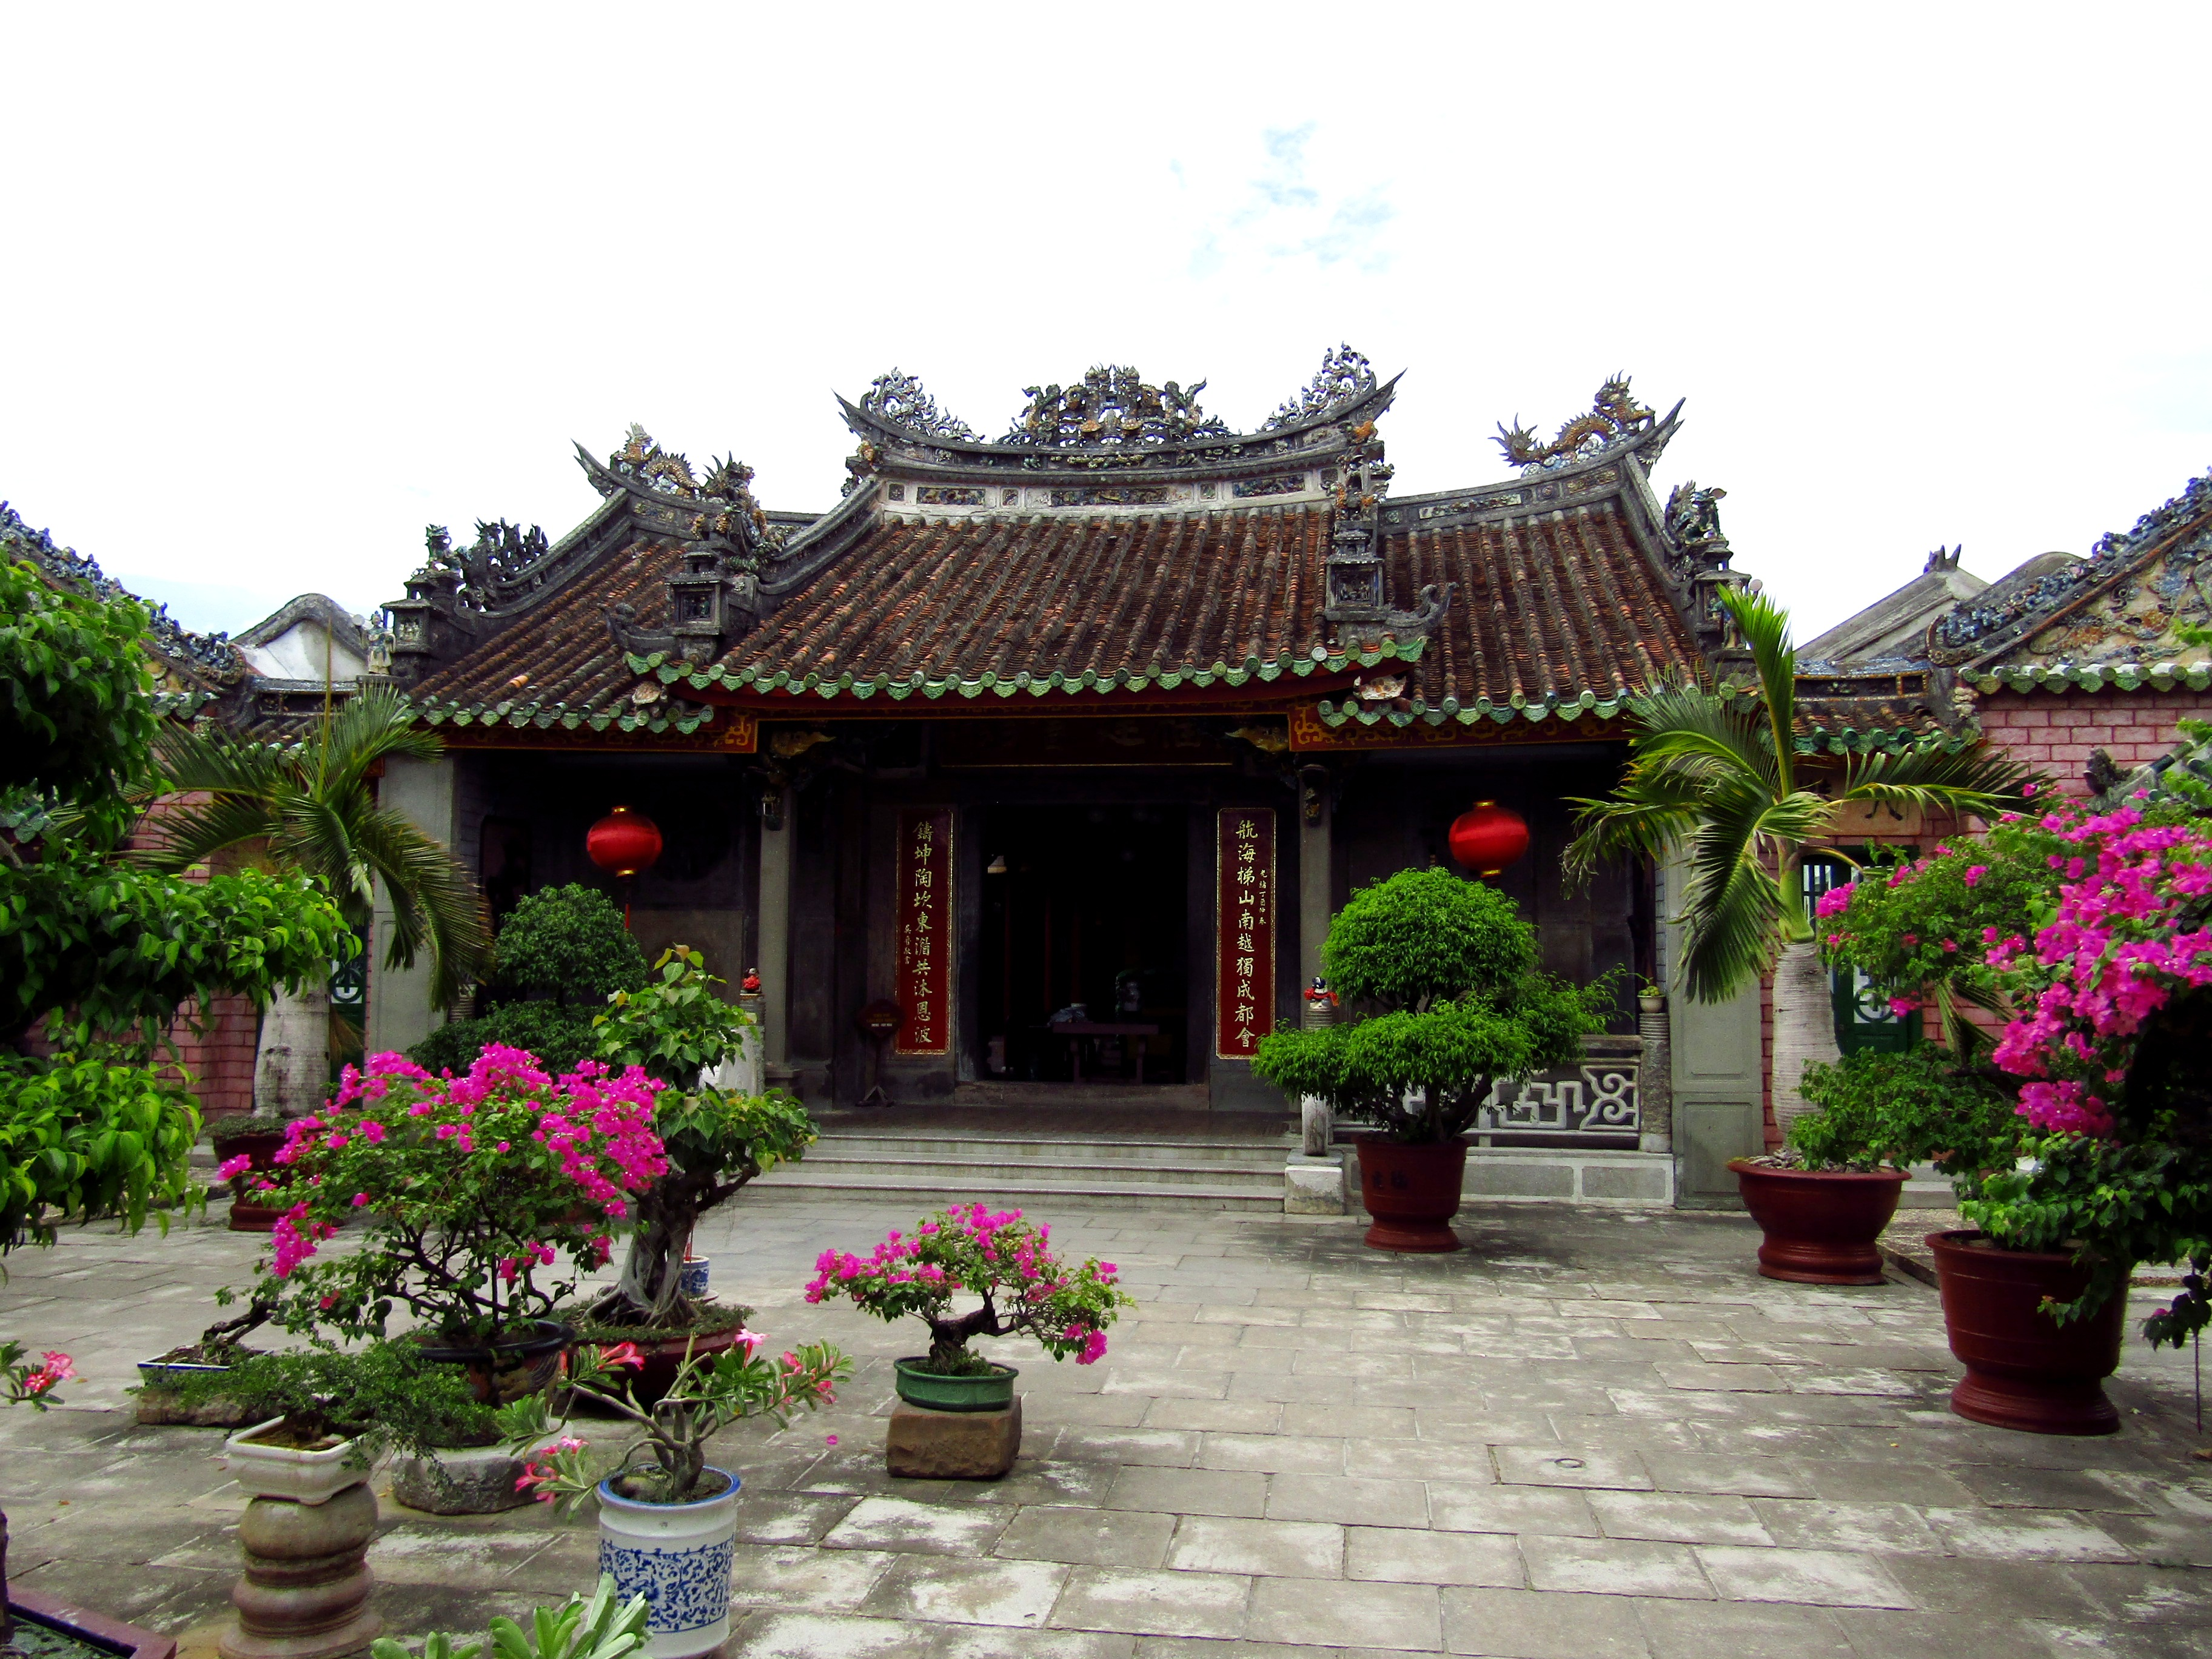 One of the Chinese temples in Hoi An